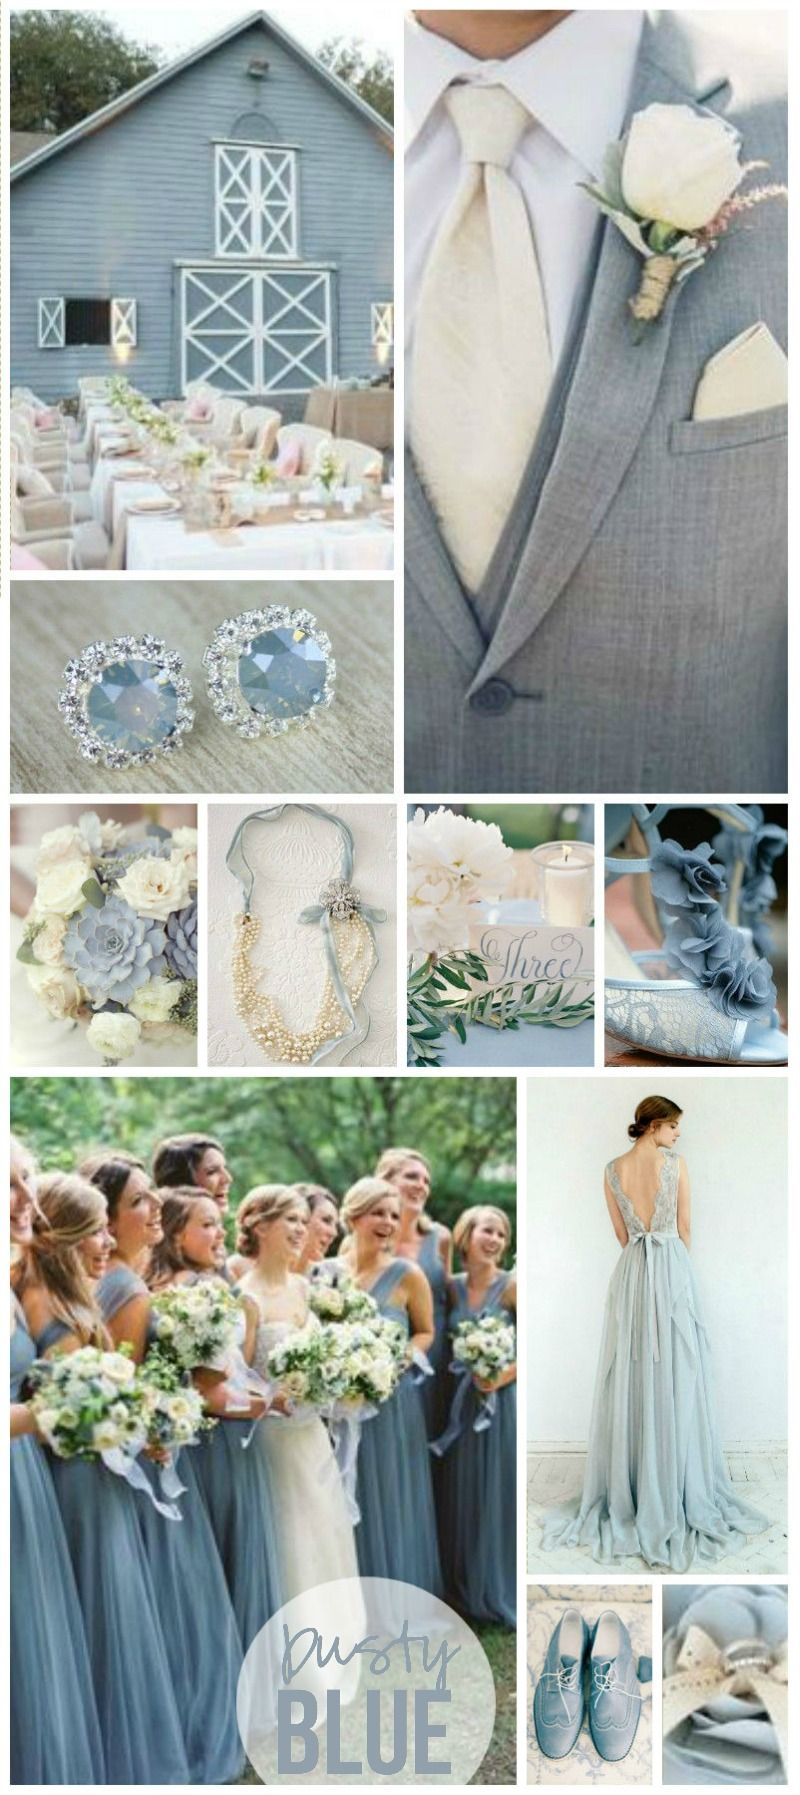 Wedding decorations yellow and gray  How to Put Together a Mood Board for YOUR Perfect Wedding  three